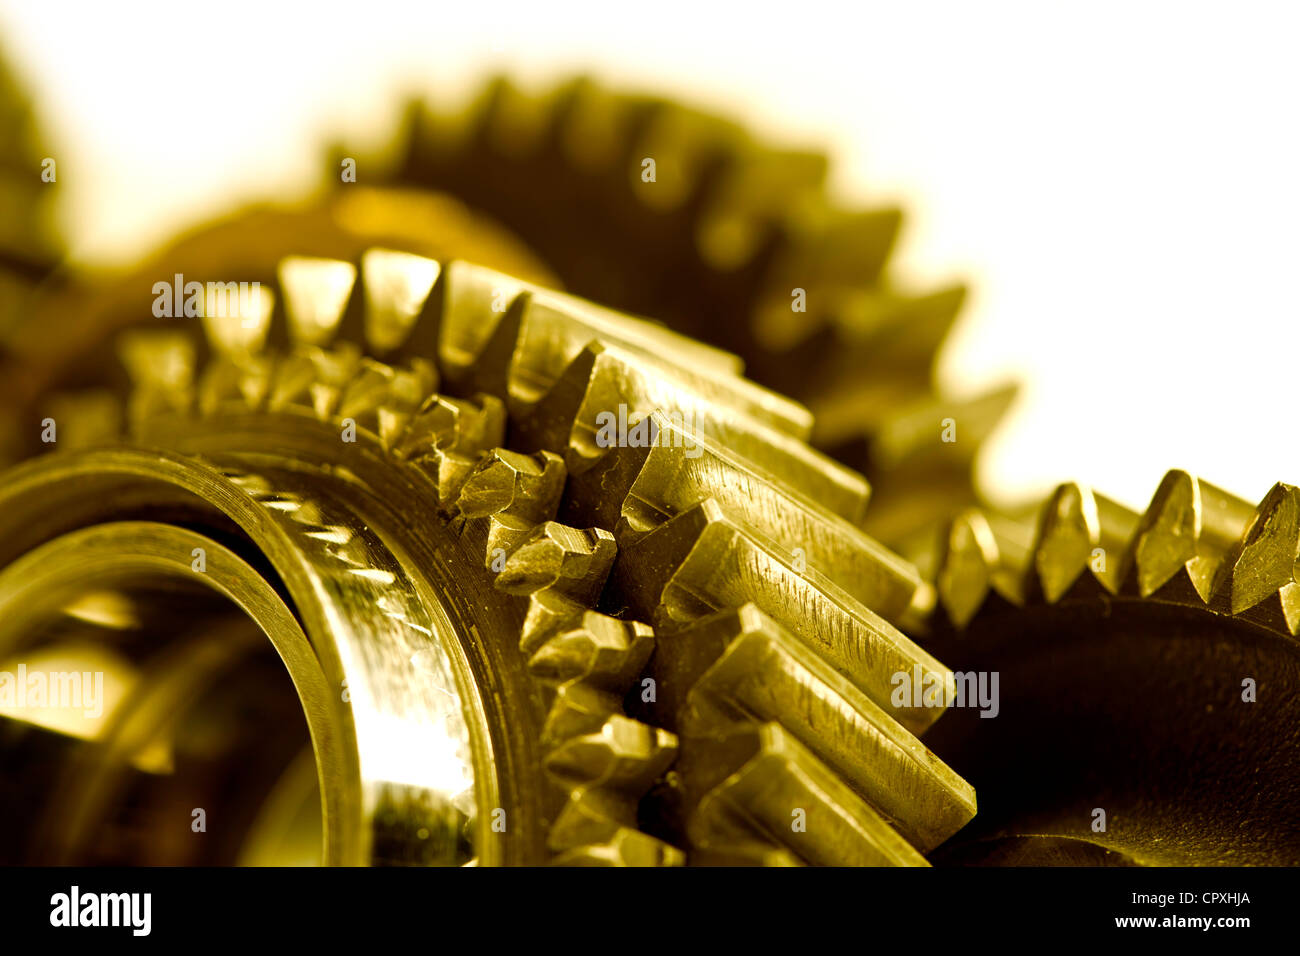 Colorfull gears isolated on white background - Stock Image